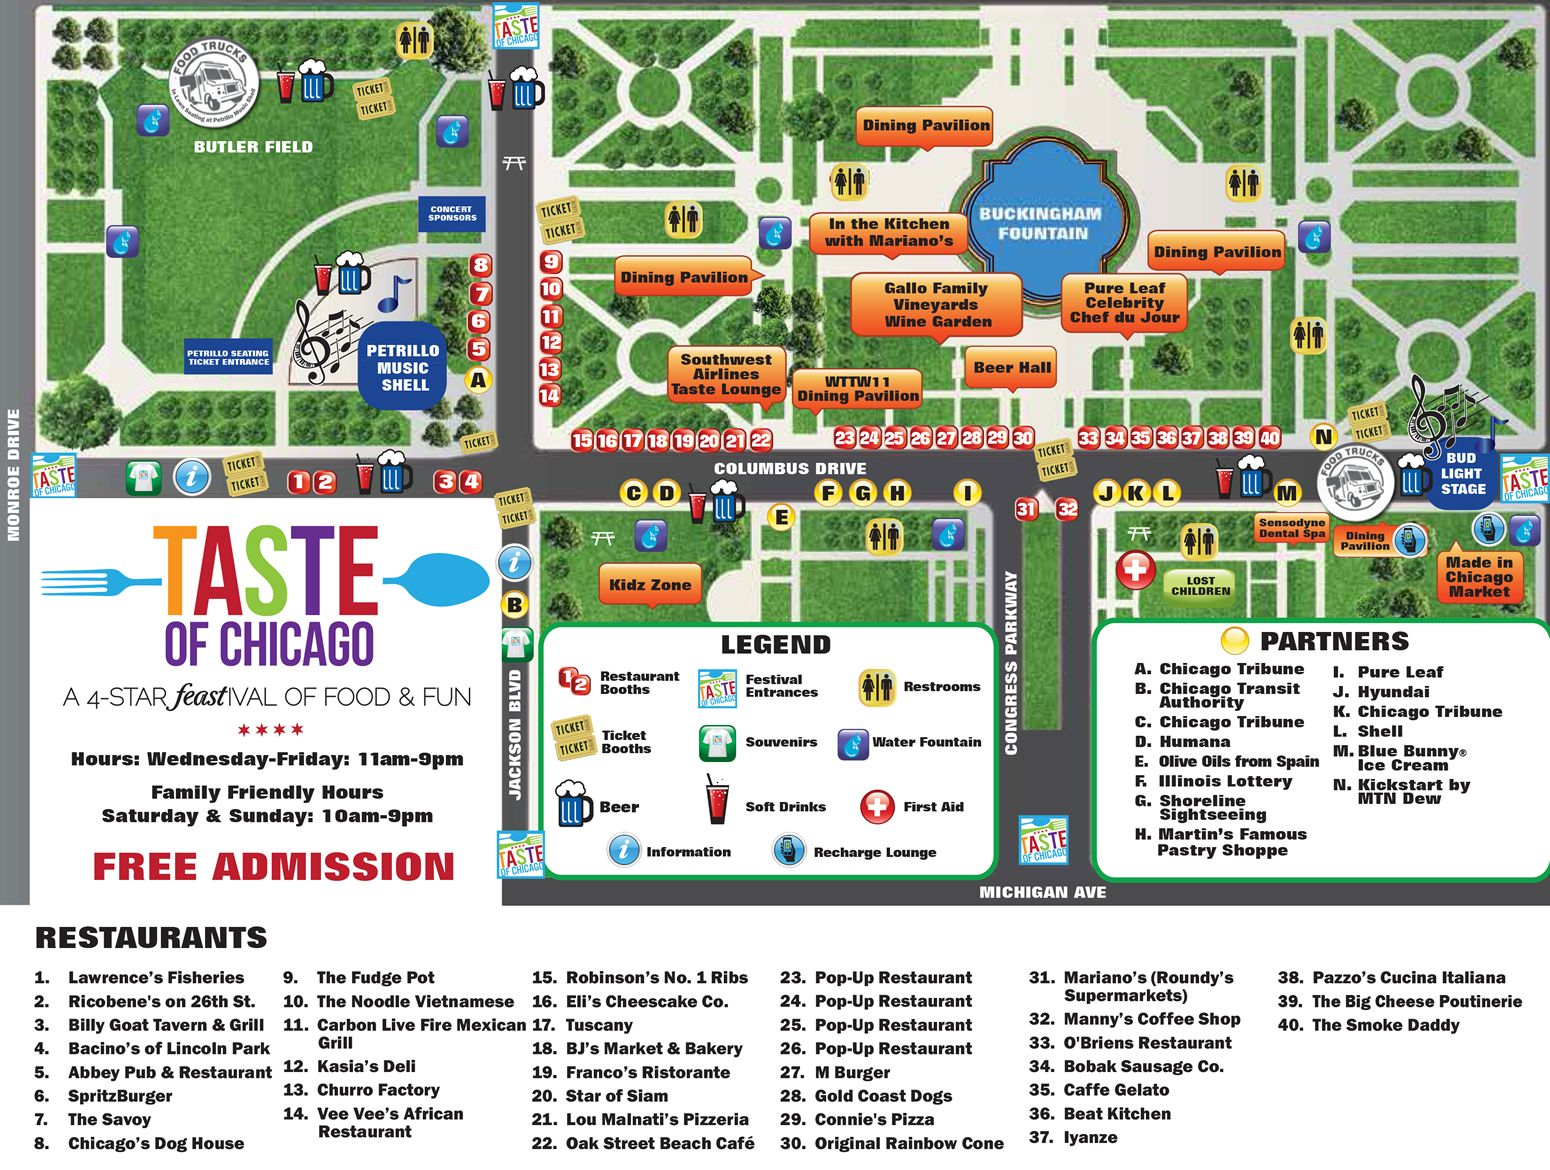 Taste Of Chicago Map I NEED TO GOOOOO Chicago Fun Pinterest - Chicago map attractions